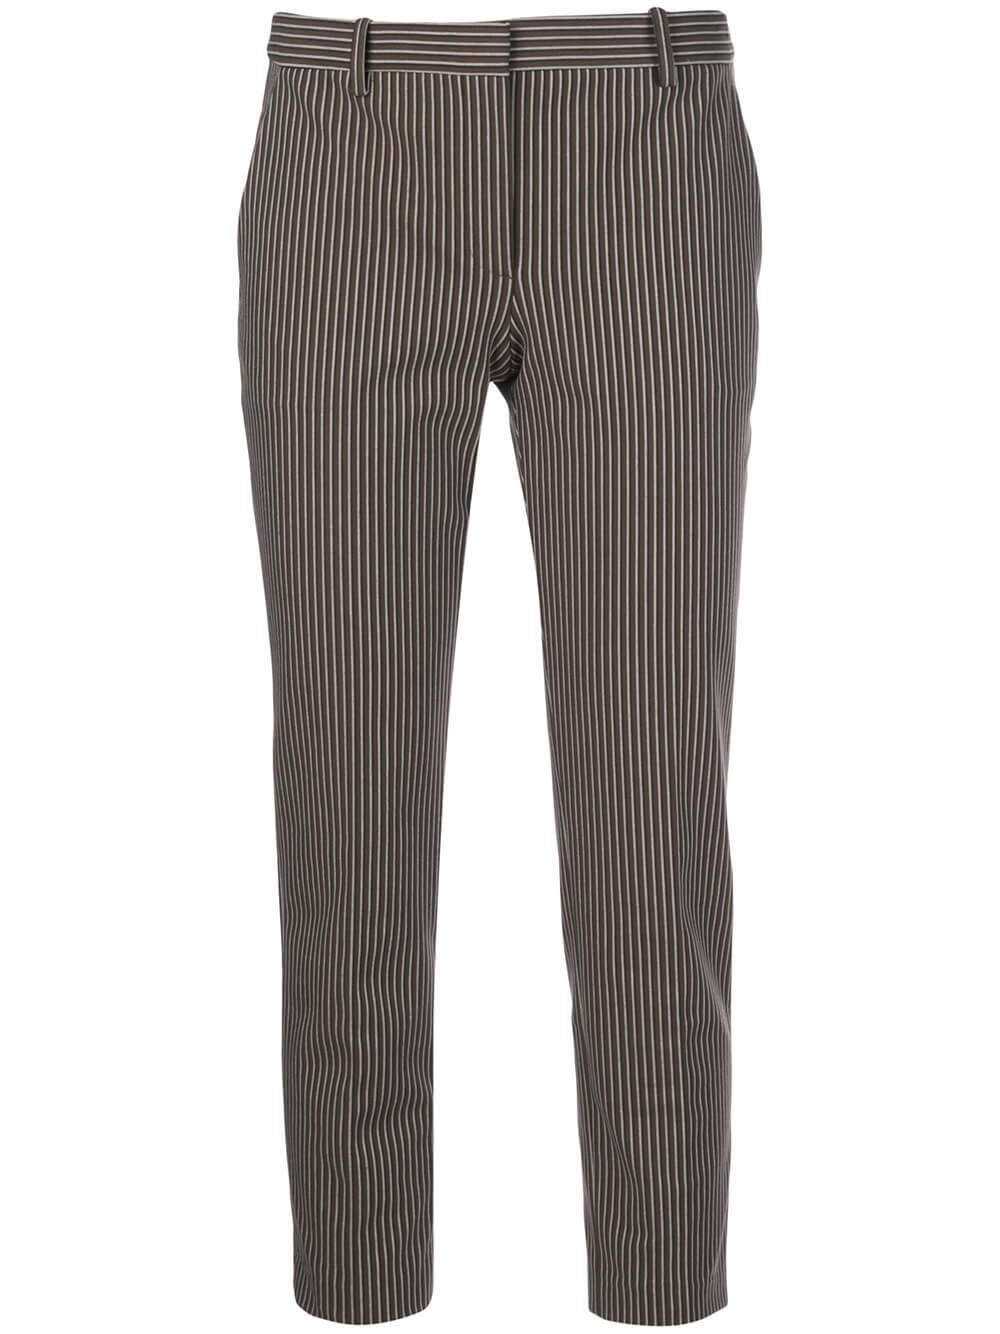 Treeca 4 Stripe Stretch Pant